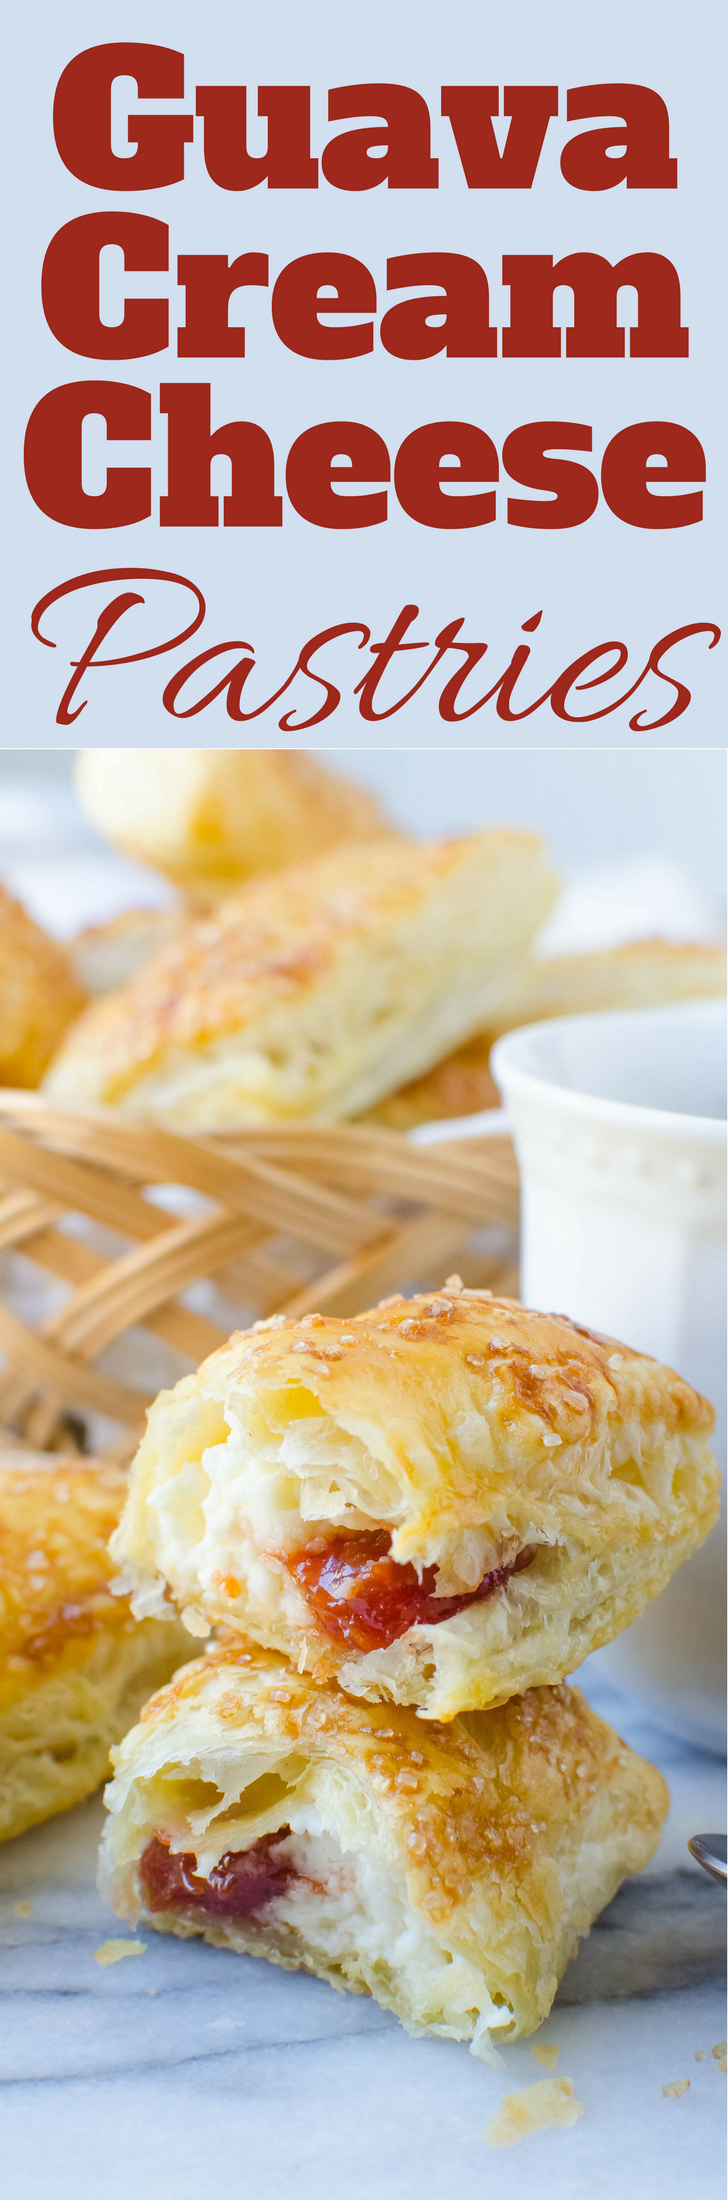 With only 5-ingredients, this easy recipe for Guava Cream Cheese Pastries is the best breakfast or brunch treat.  Great for snacking too!